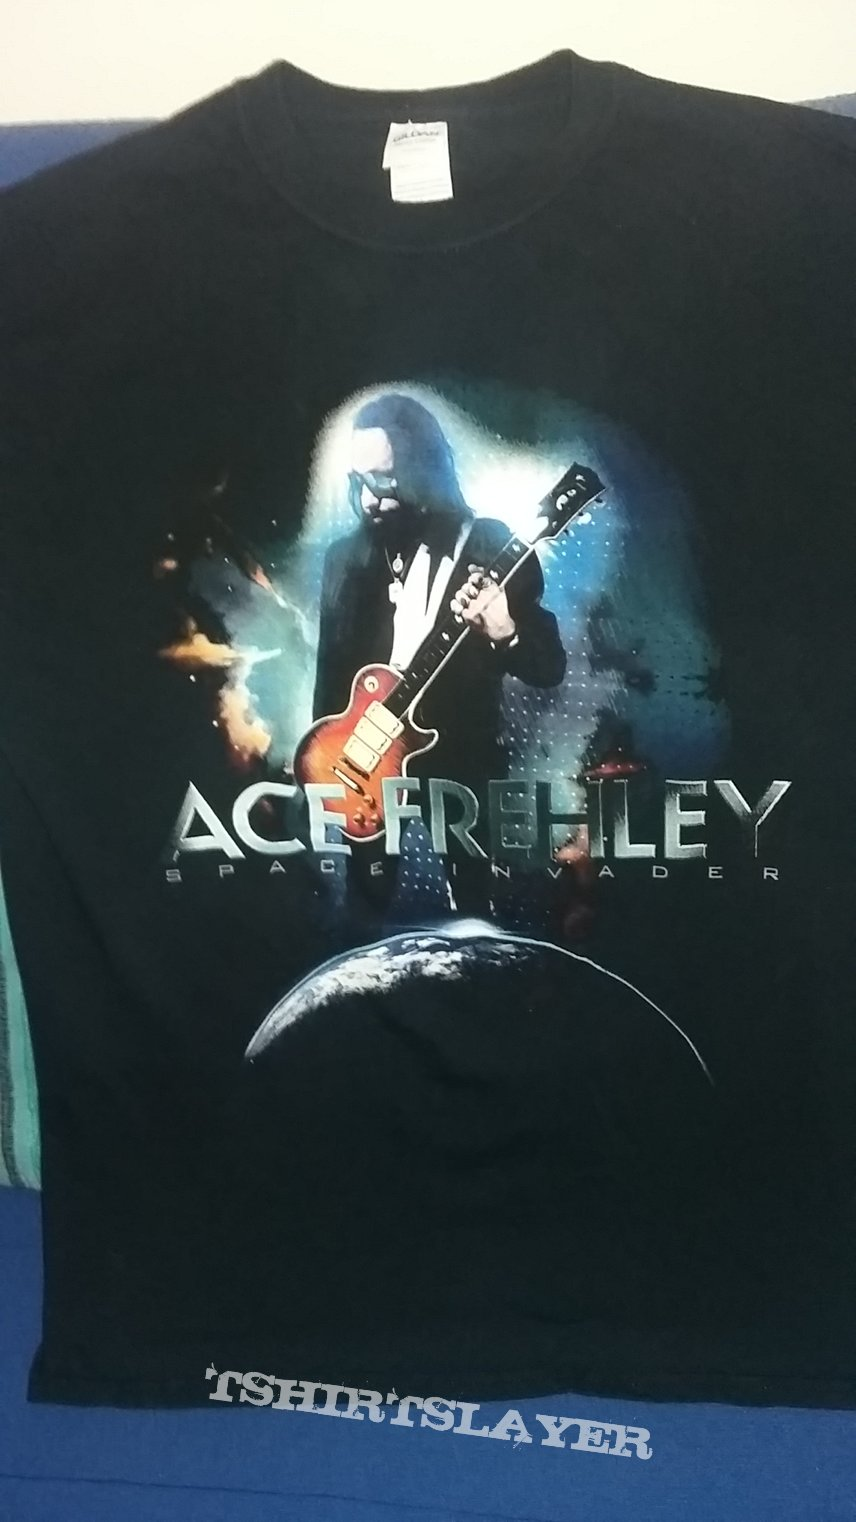 Ace Frehley - Space Invader World Tour 2016